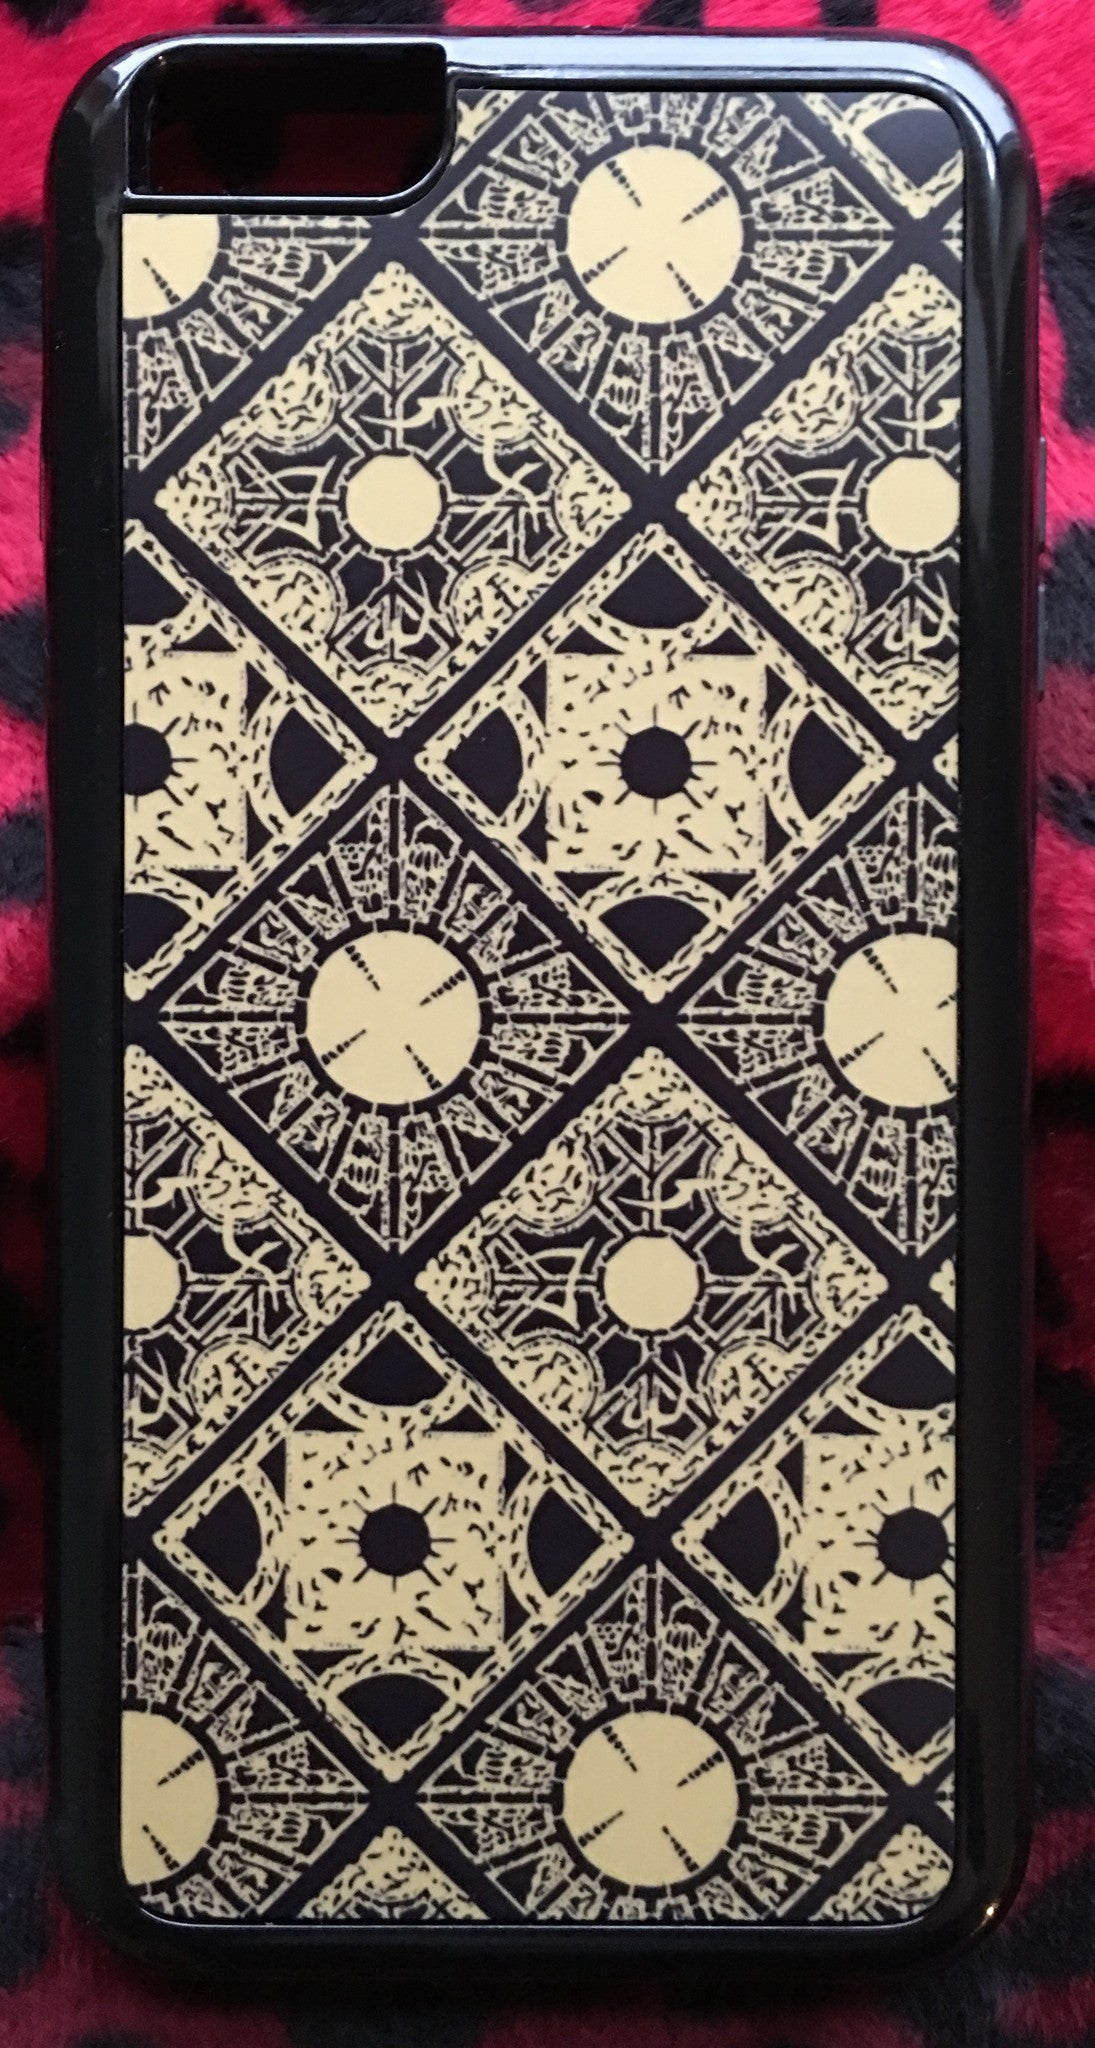 Hellraiser Lament Configuration iPhone 6+/6S+ Case